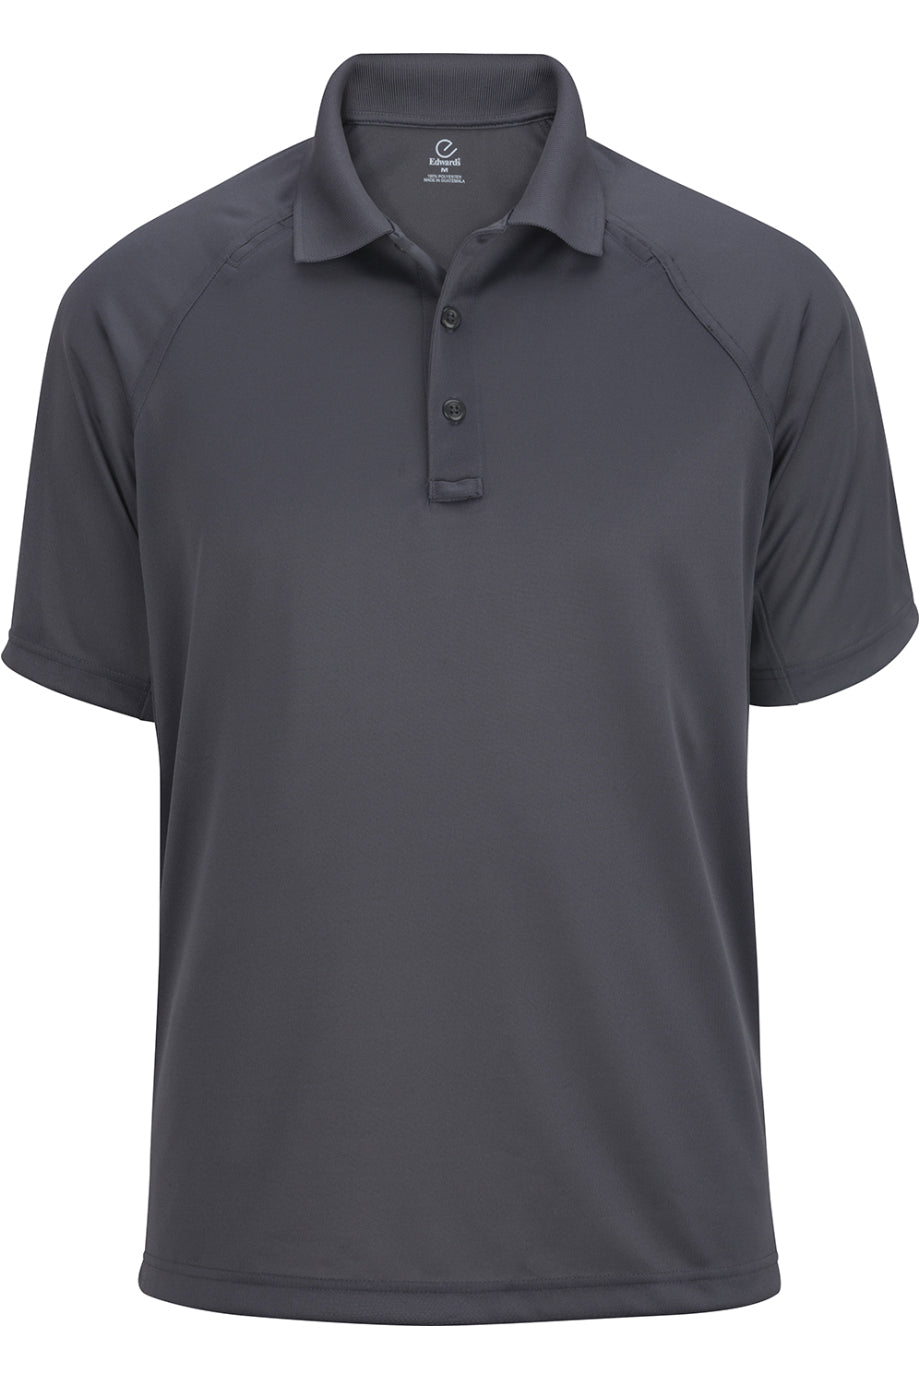 Steel Grey Edwards Mens Tactical Snag-Proof Short Sleeve Polo